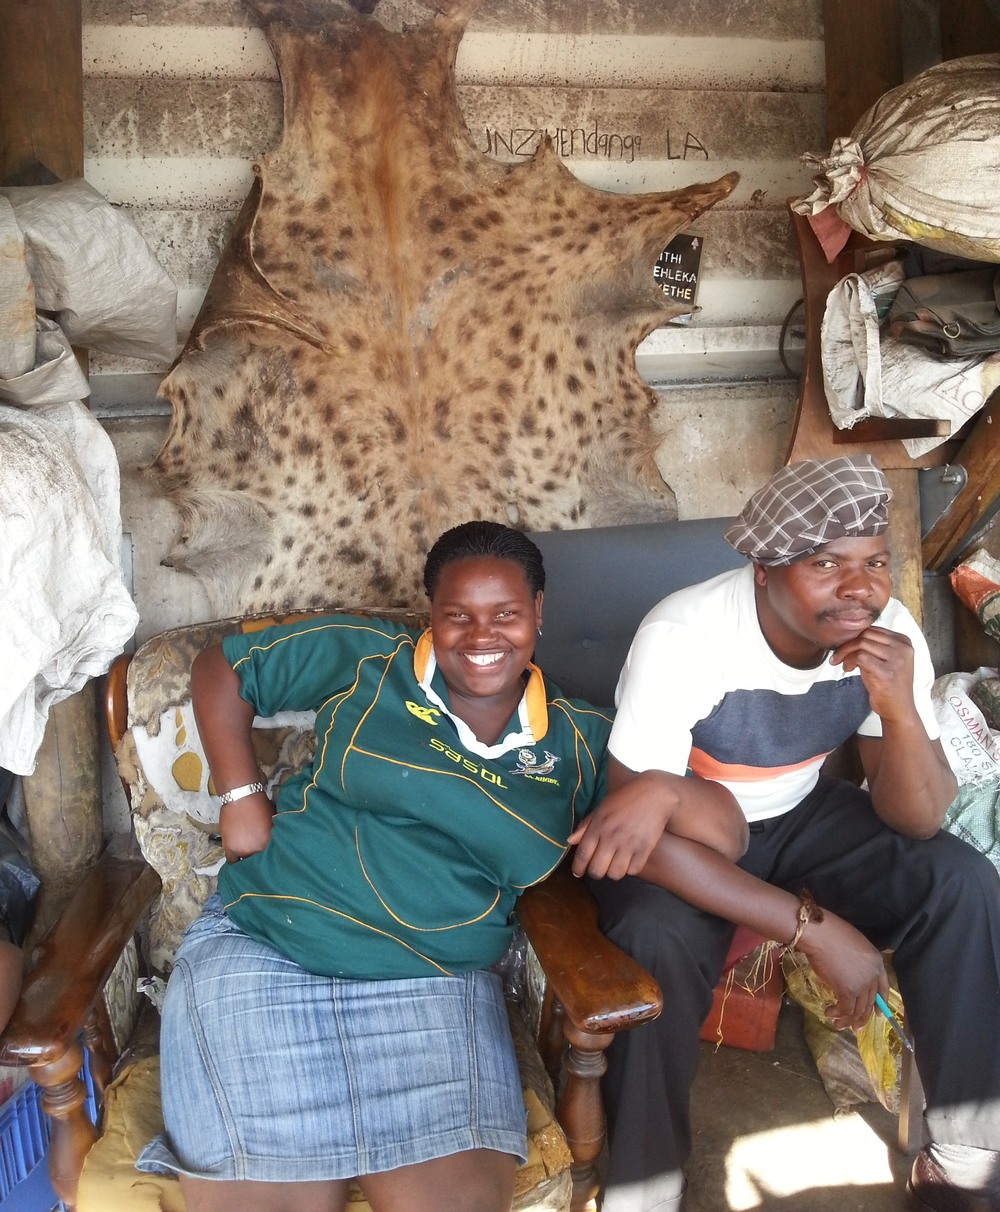 Two muthi traders sit under a hyena skin. How obvious is it that the brother was much less keen on being interviewed than the sister?